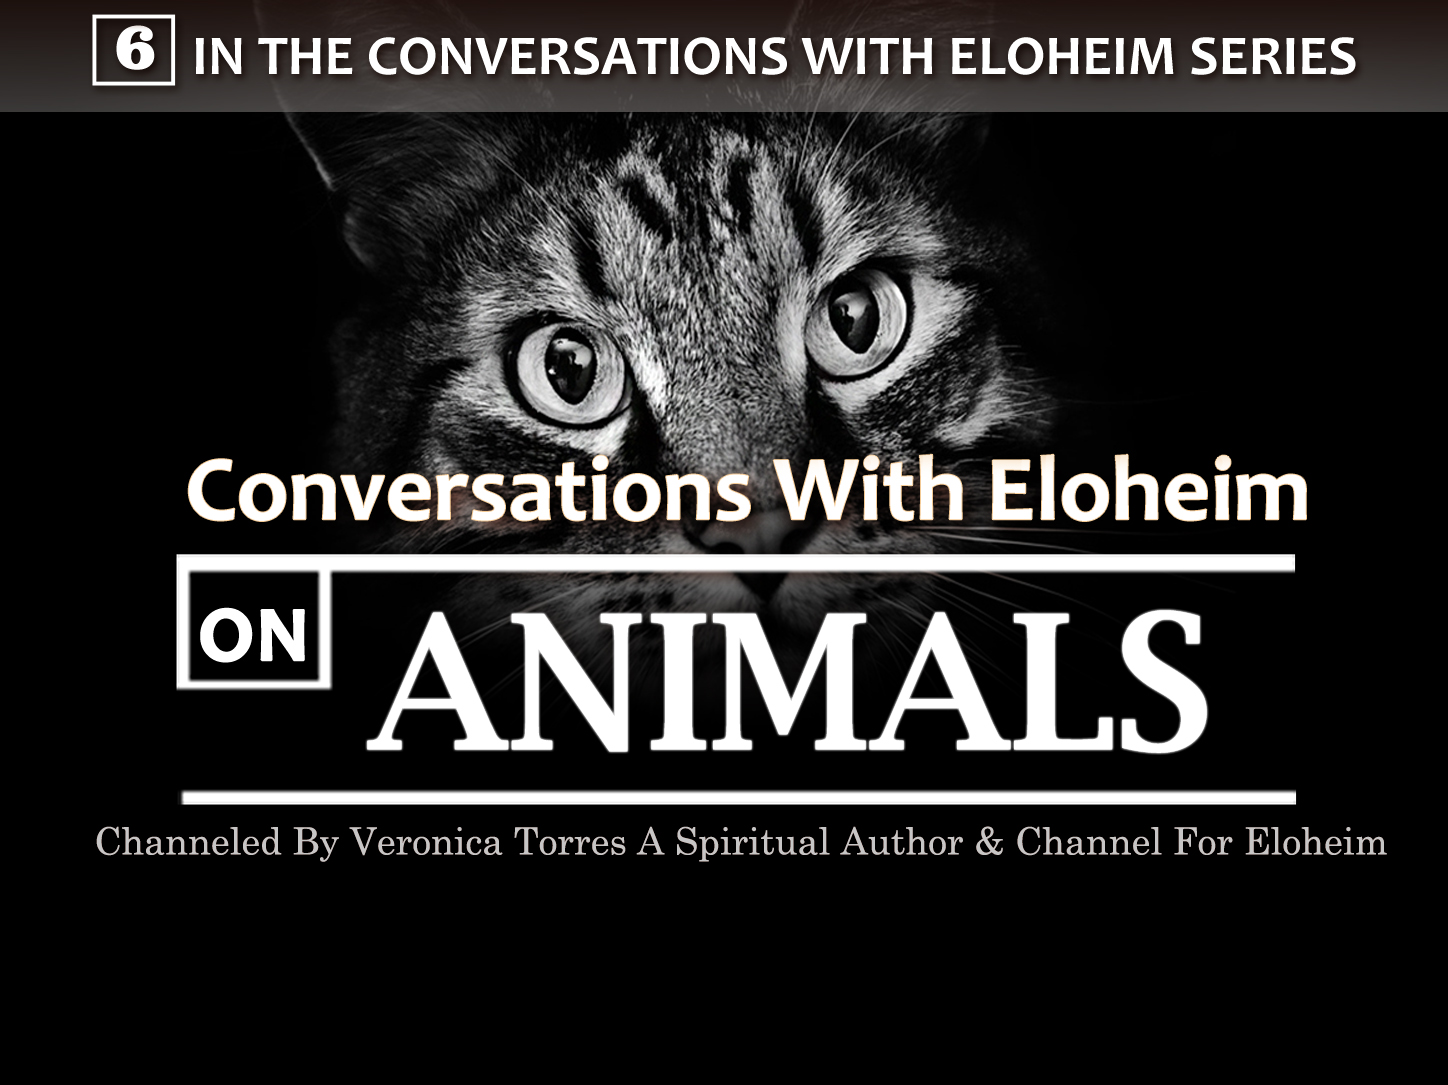 Conversation with Eloheim on Animals